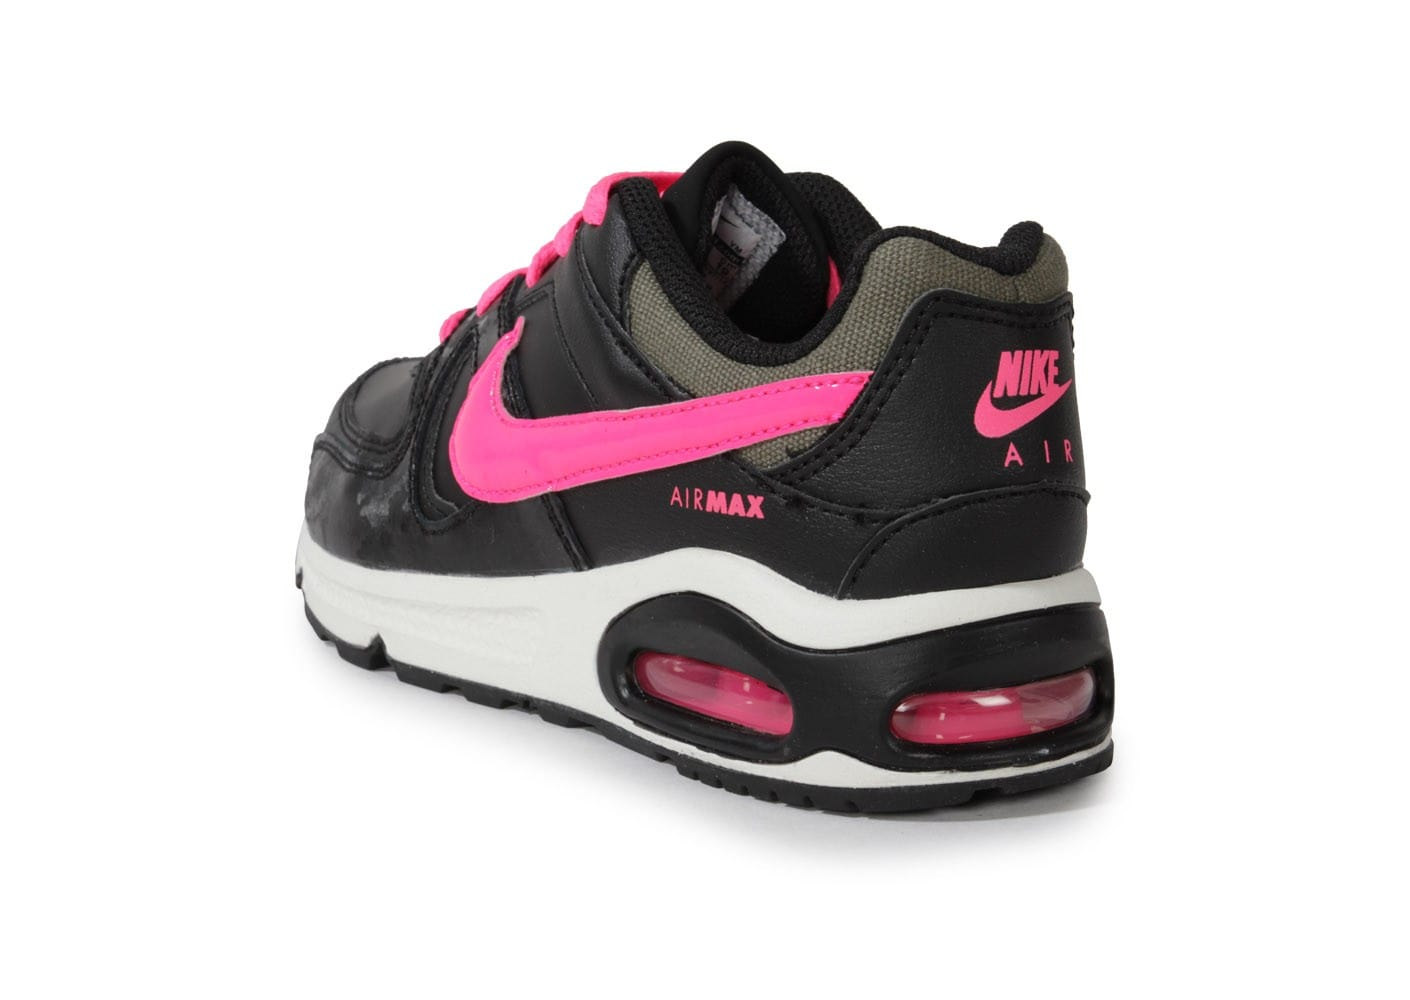 nike air max rose et noir. Black Bedroom Furniture Sets. Home Design Ideas